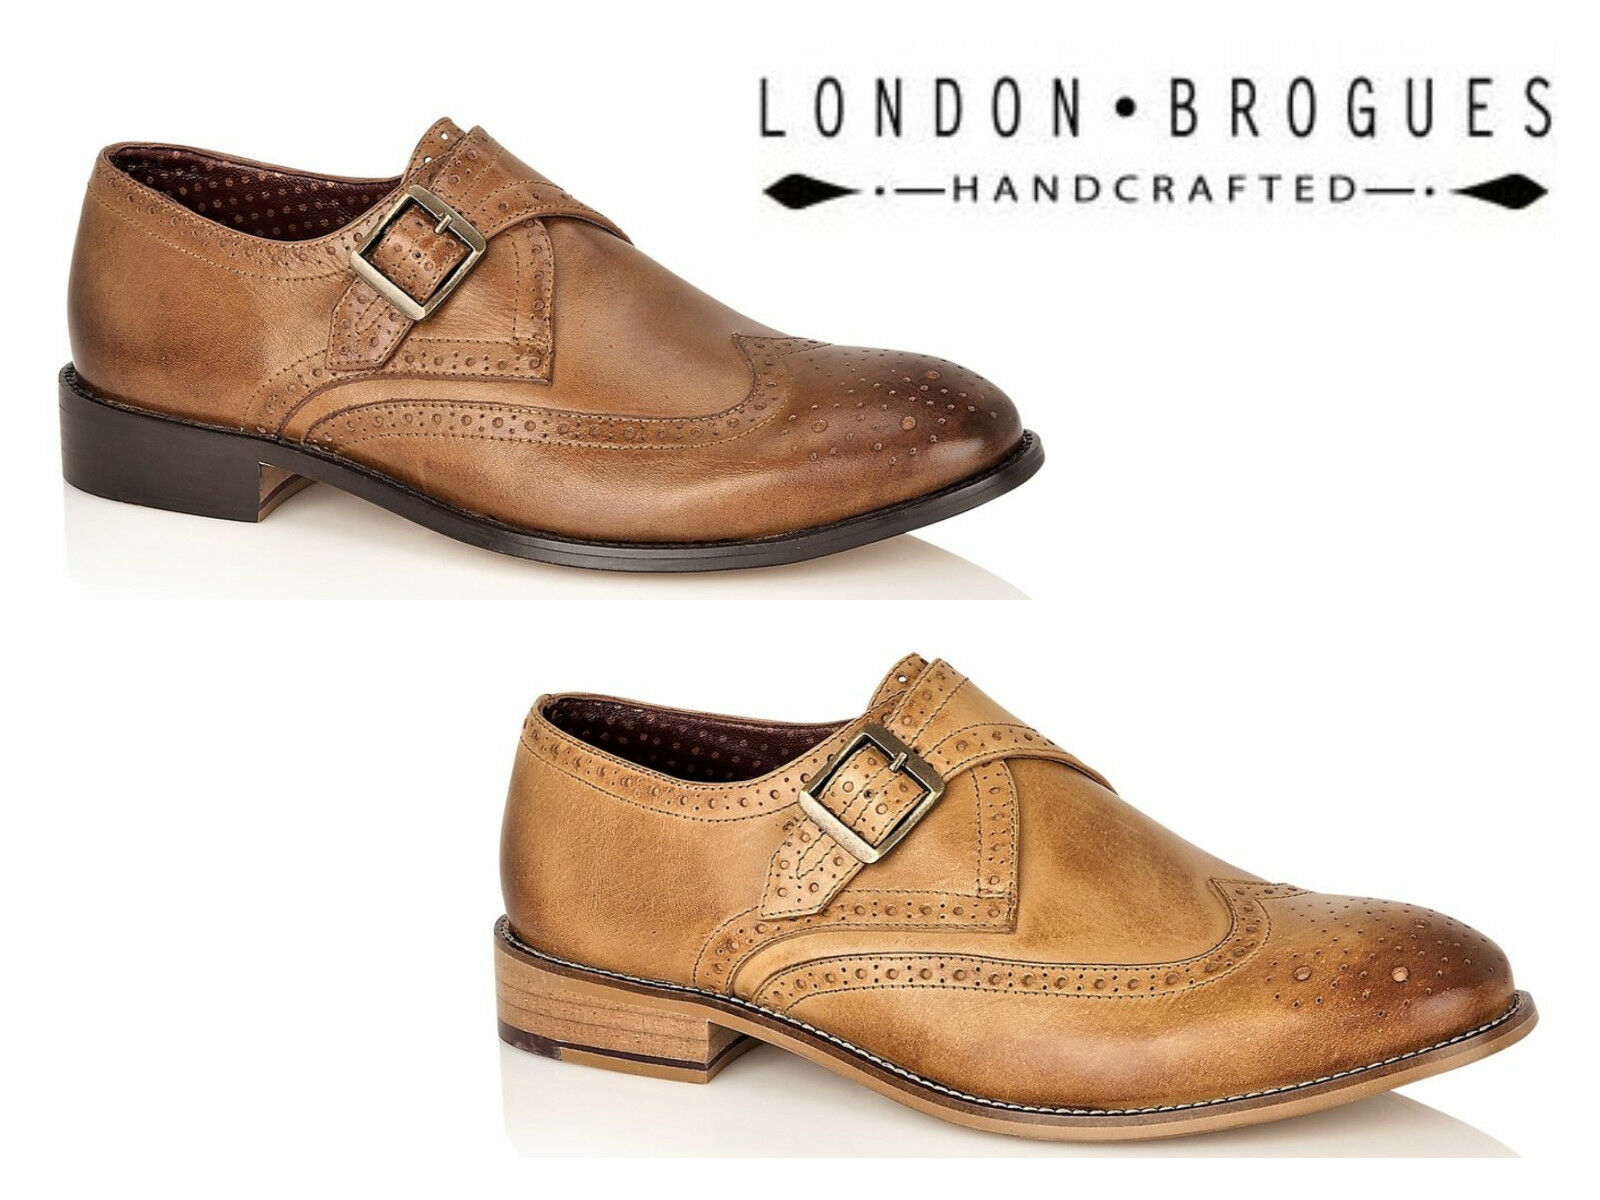 London Brogues Leather Brogue Single Strap Strap Strap Buckle Monk schuhe 2 Colours Größe 7-12  2e0ed7